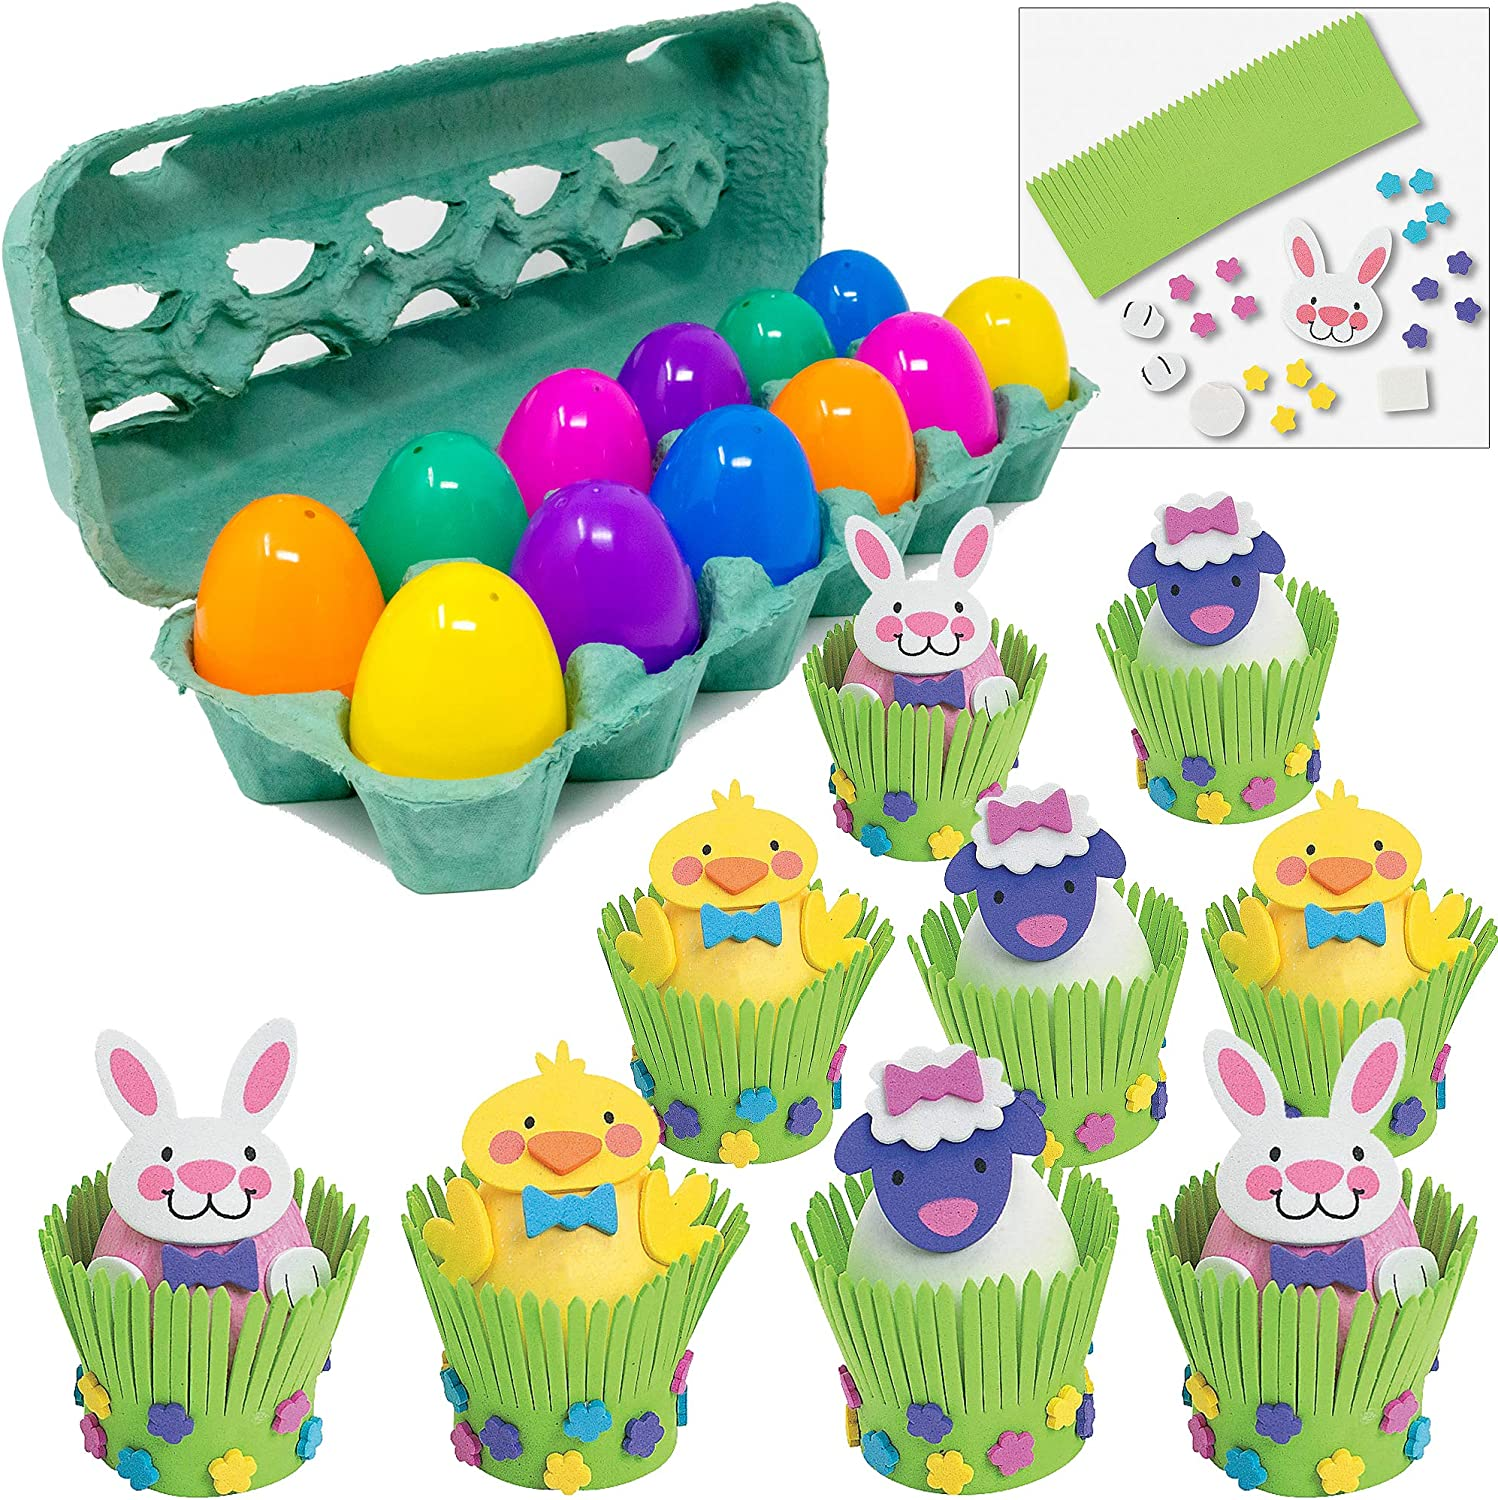 Max Fun Easter Stickers DIY Bunny Rabbit Chick Stickers Crafts Easter Party Supplies Favors Games for Kids Classroom Activities Easter Stickers 24 Pack